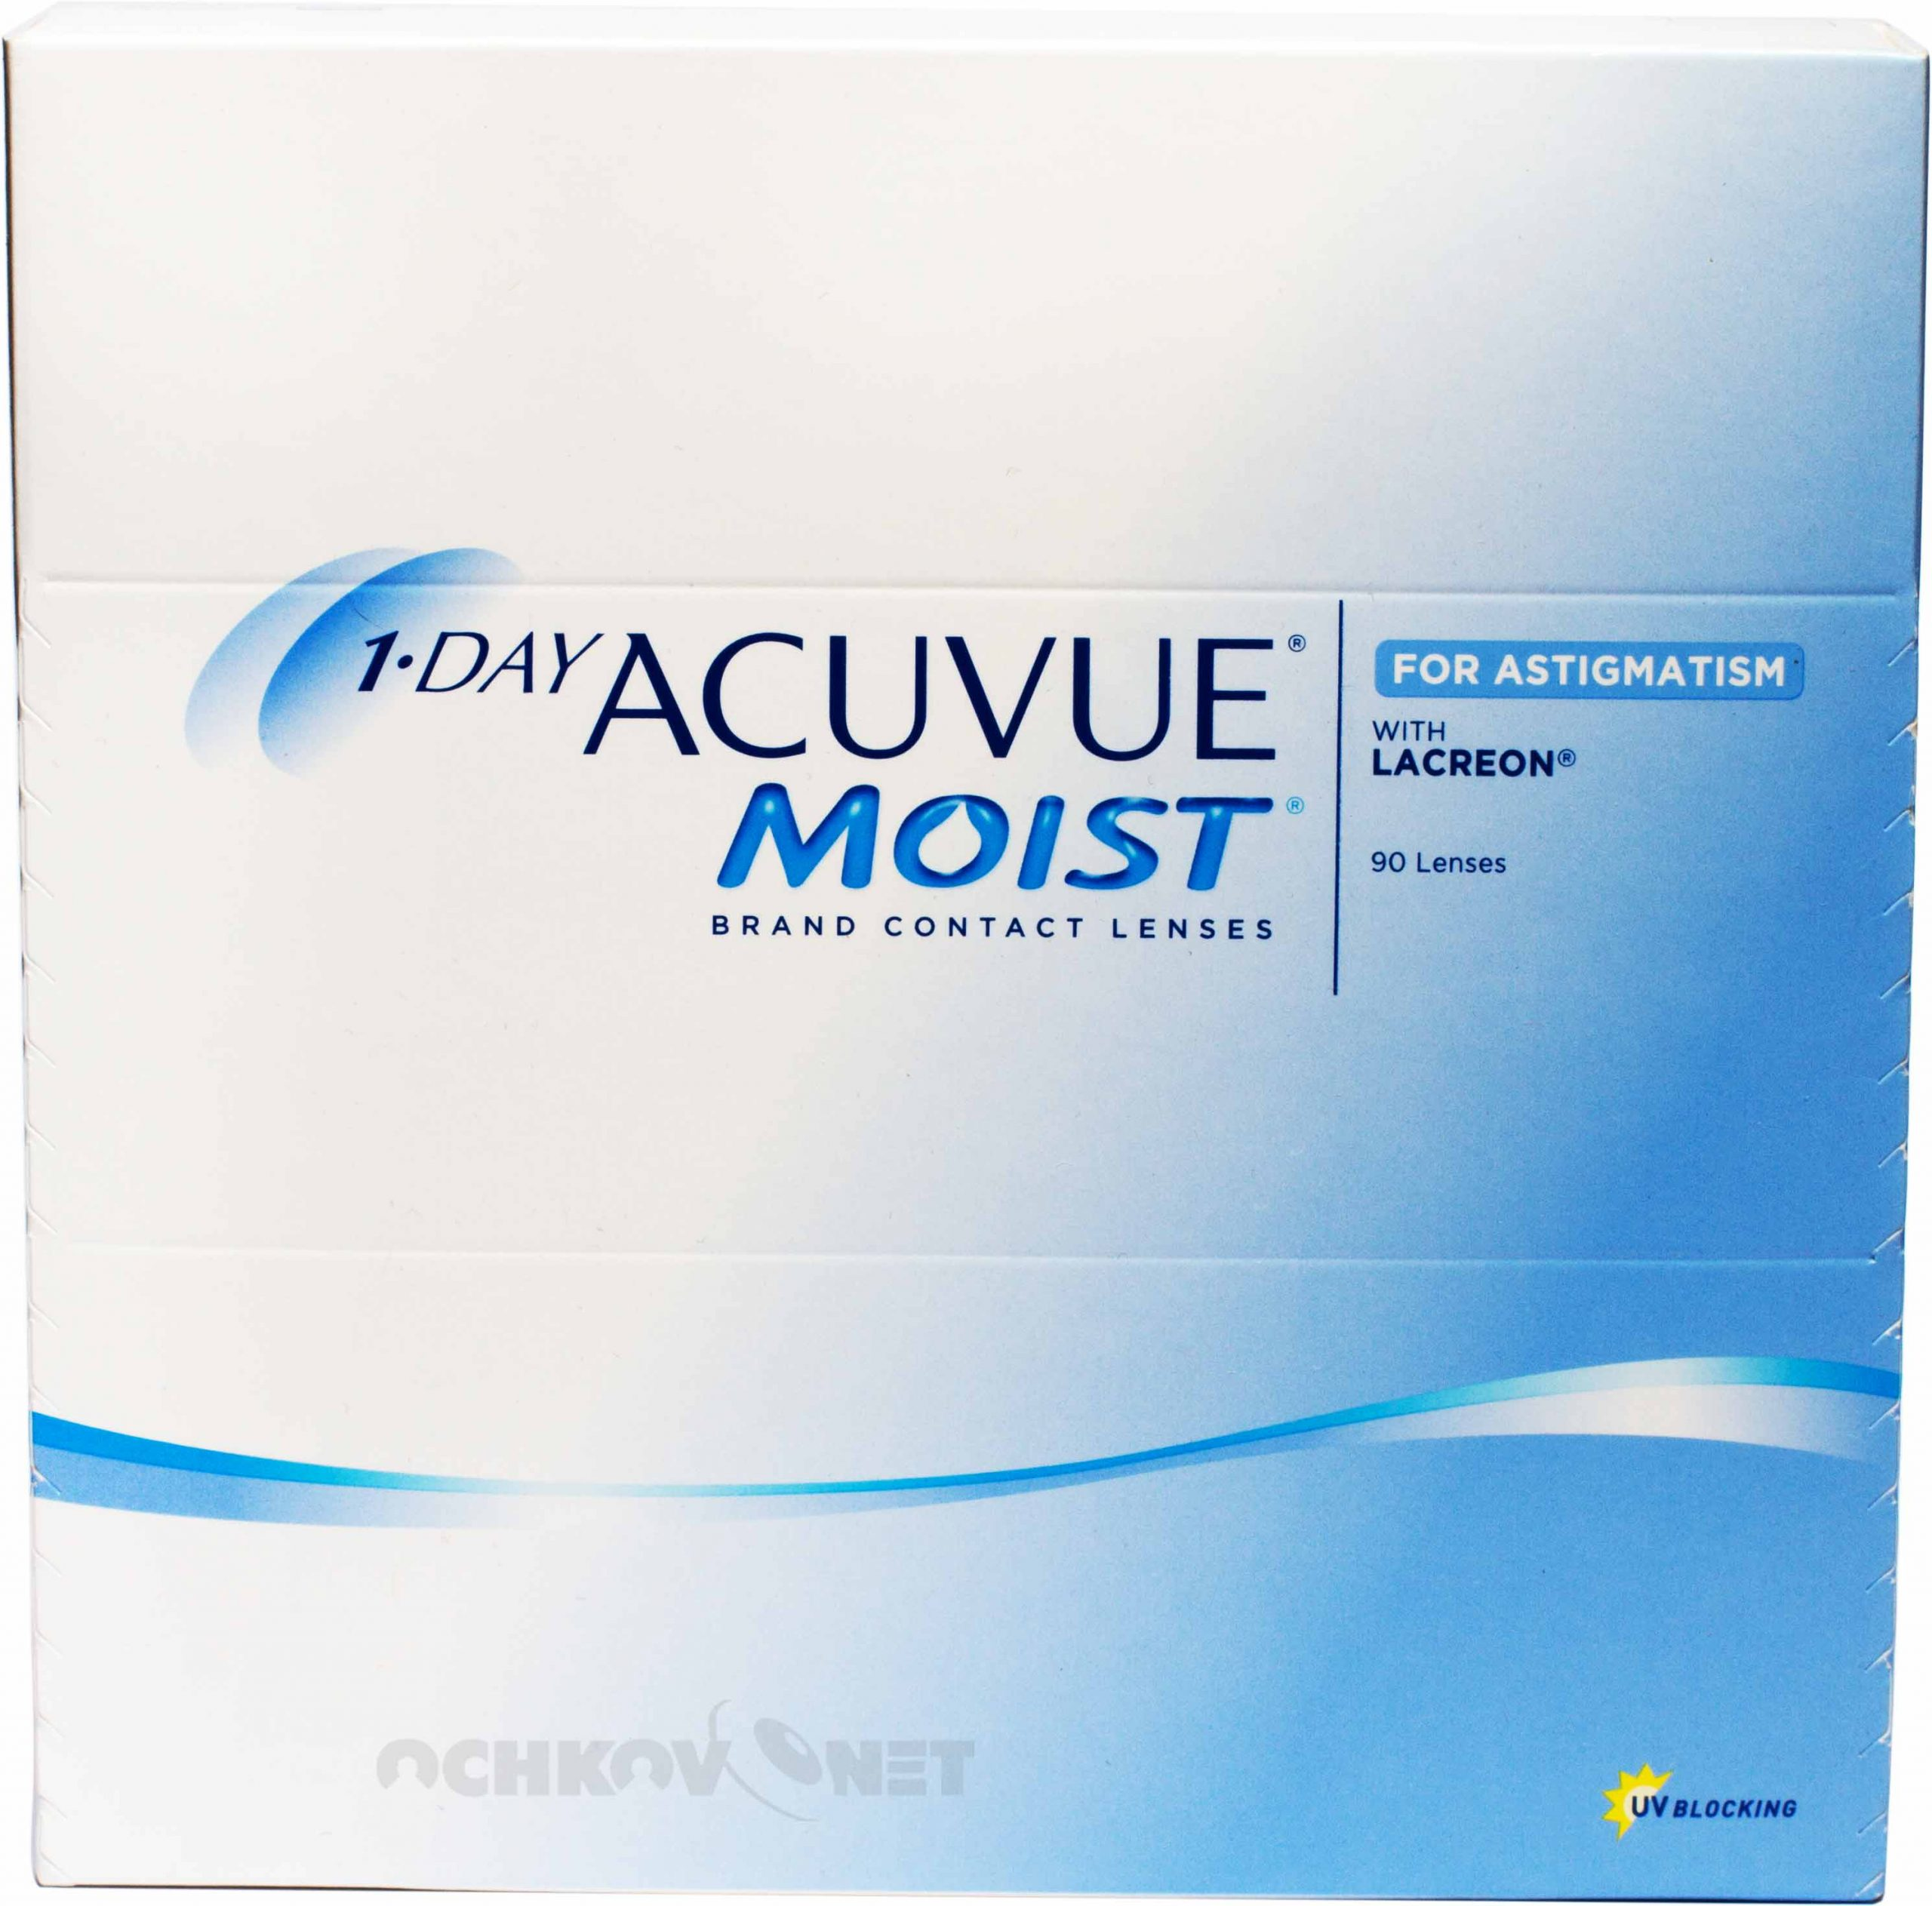 Image 1-Day Acuvue Moist for Astigmatism 90 линз 90 линз